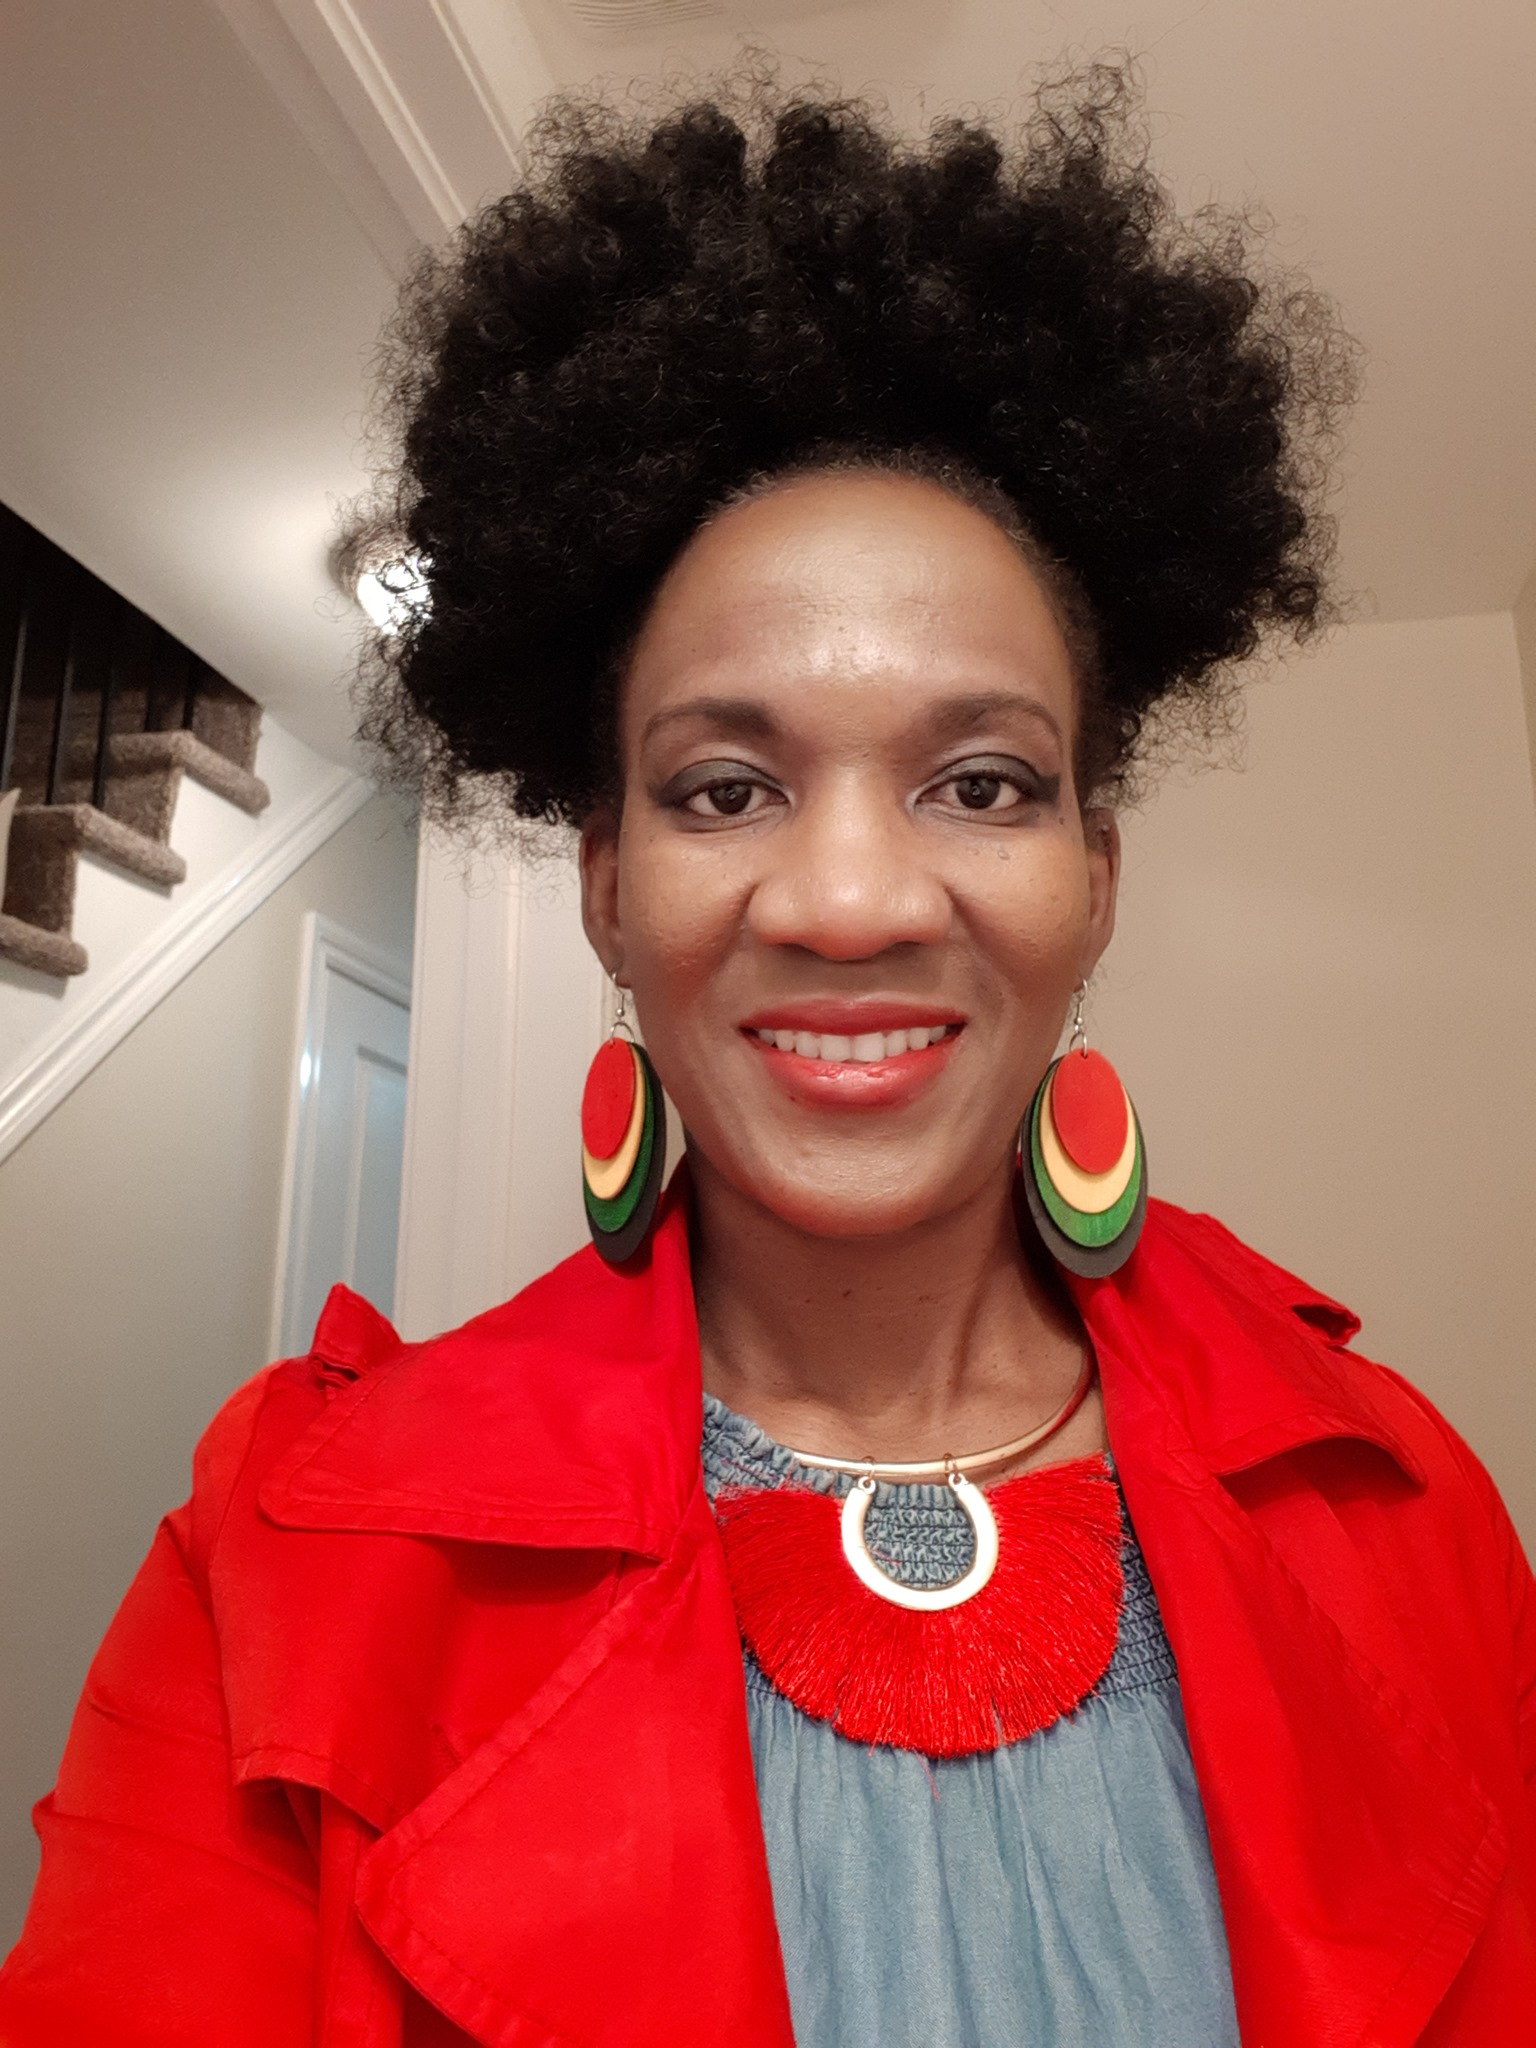 Smiling Black woman with curly hair and red jacket